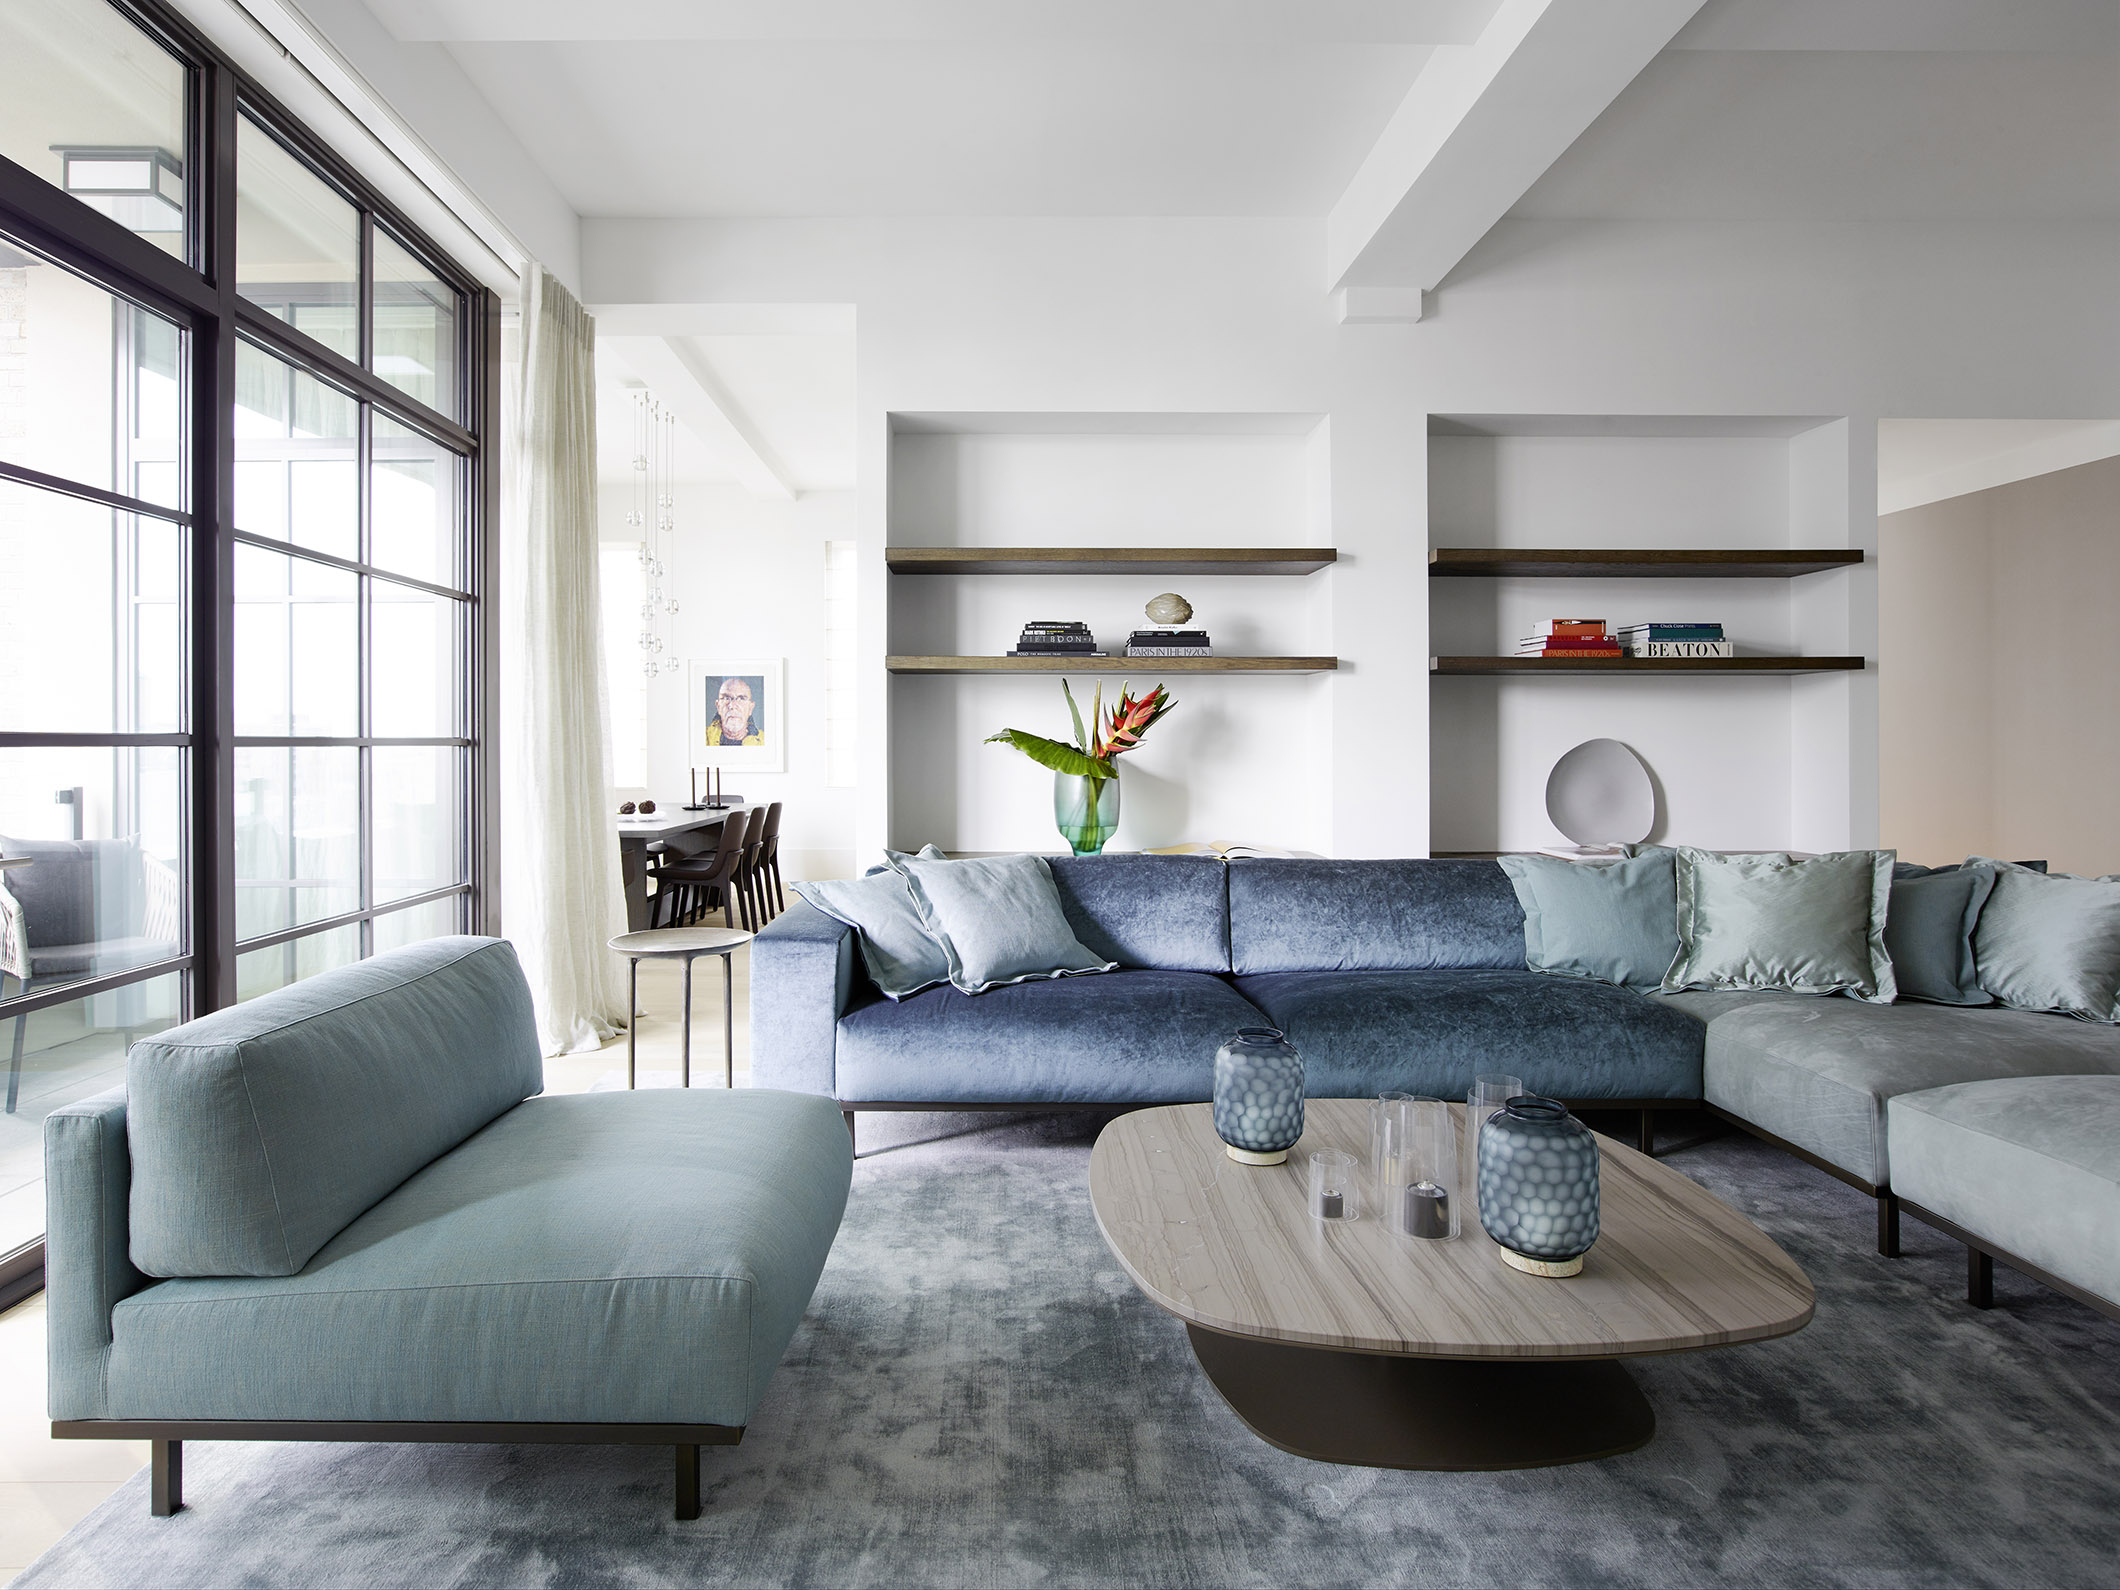 DON sofa and armchair and KEK coffee table at metropolitan penthouse